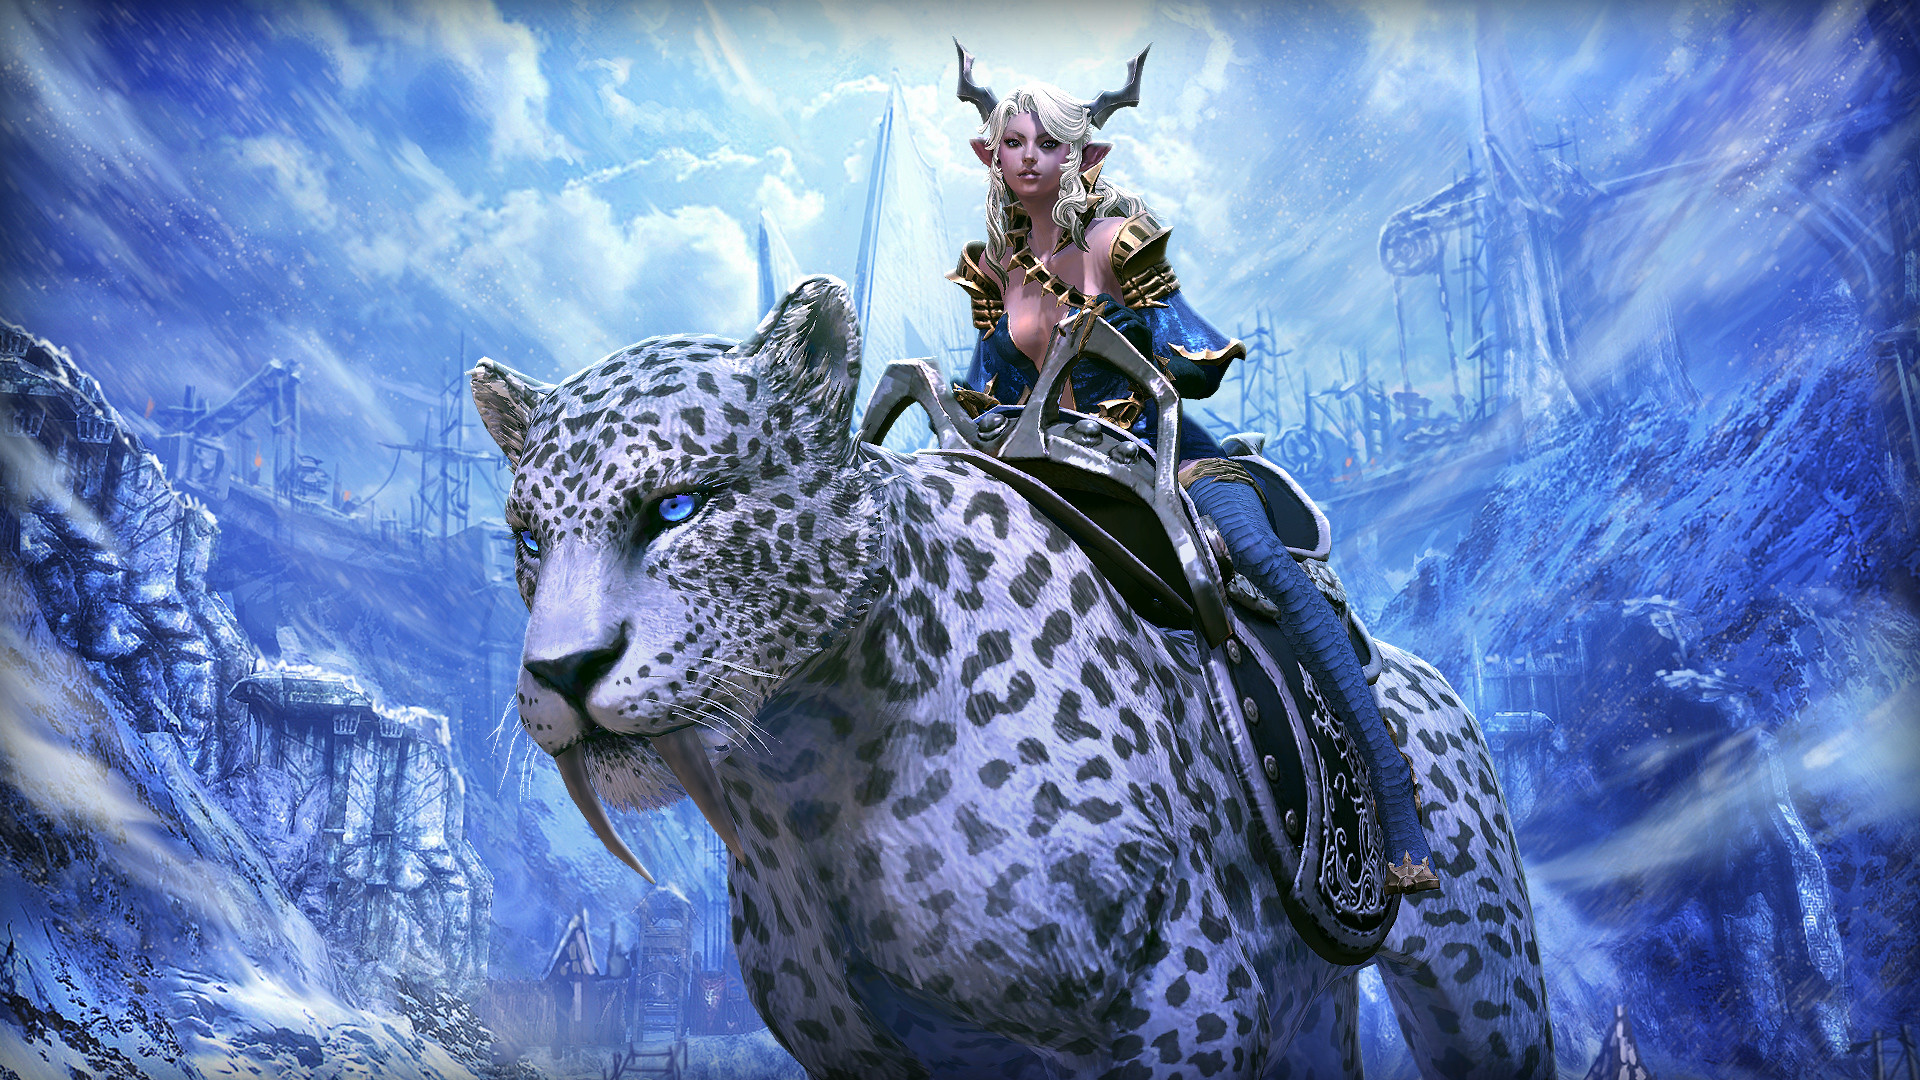 1920x1080 tera e books community forums fansite kits tera resources guild finder .